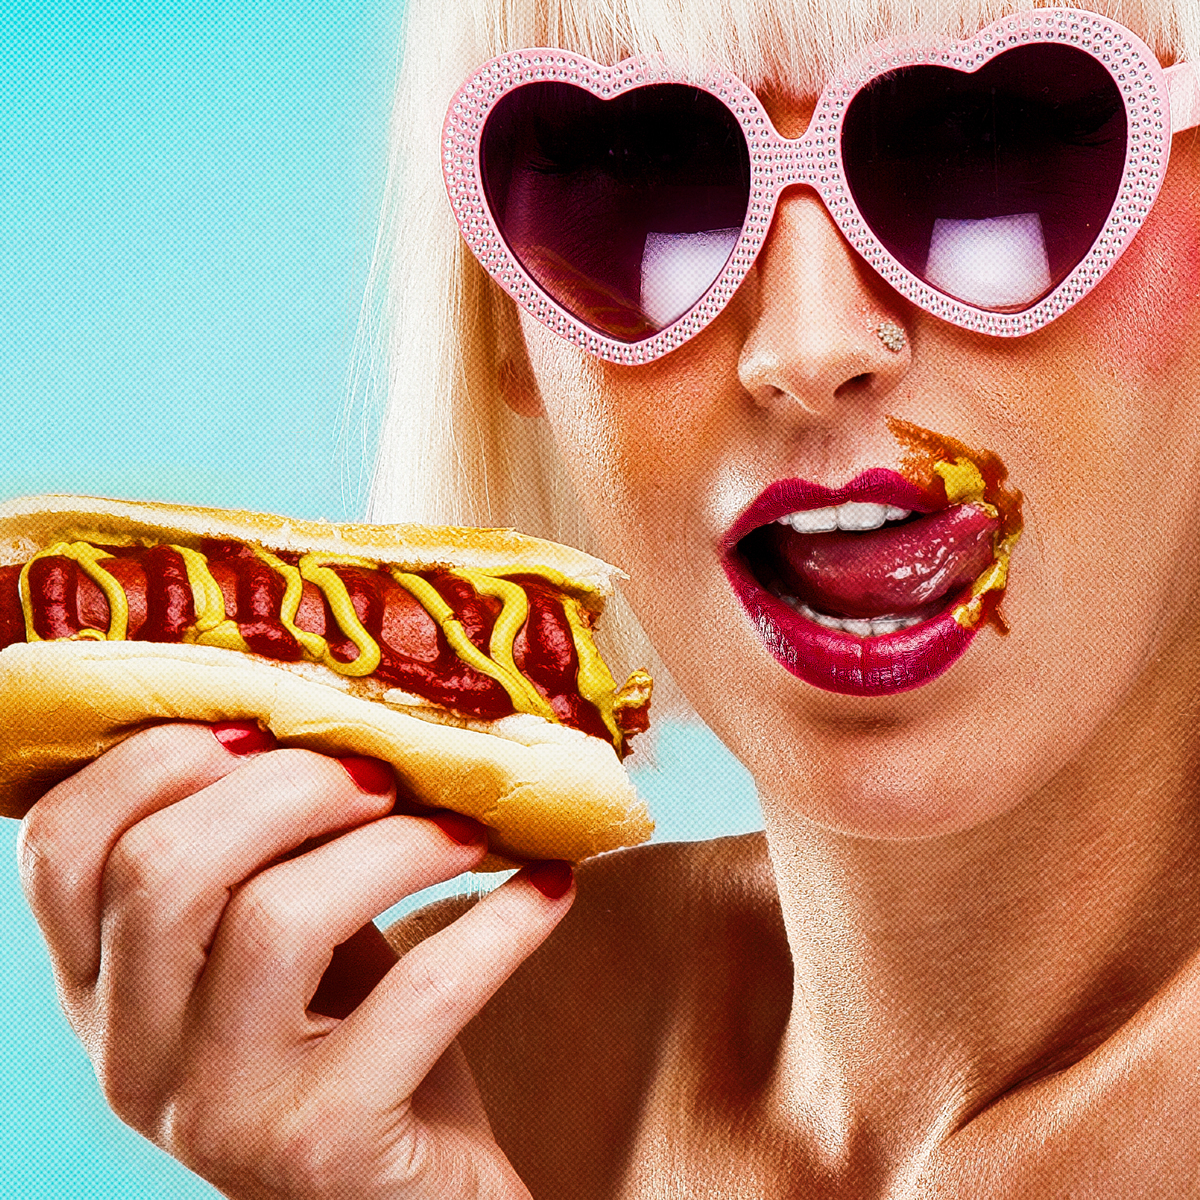 Girl With Hot Dog (large view)